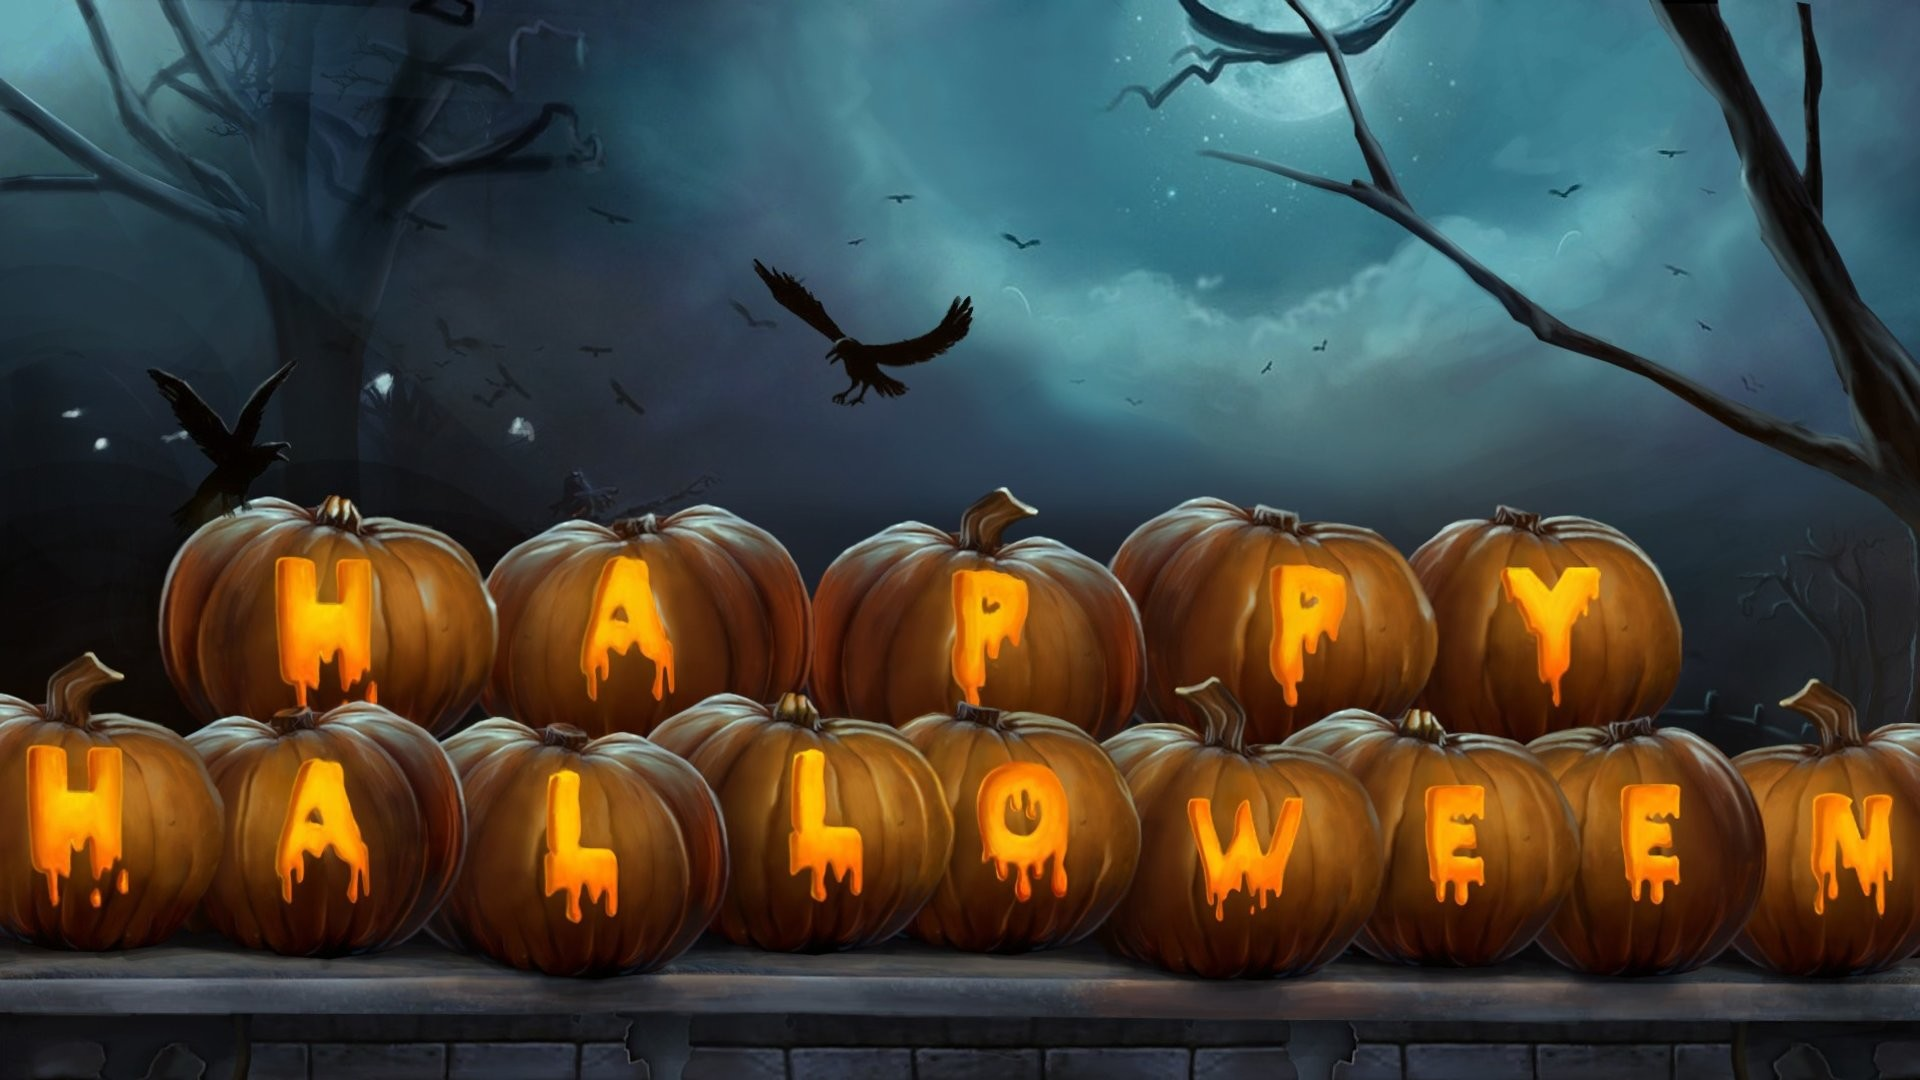 Res: 1920x1080, 20 HD wallpapers for your Halloween spirit.